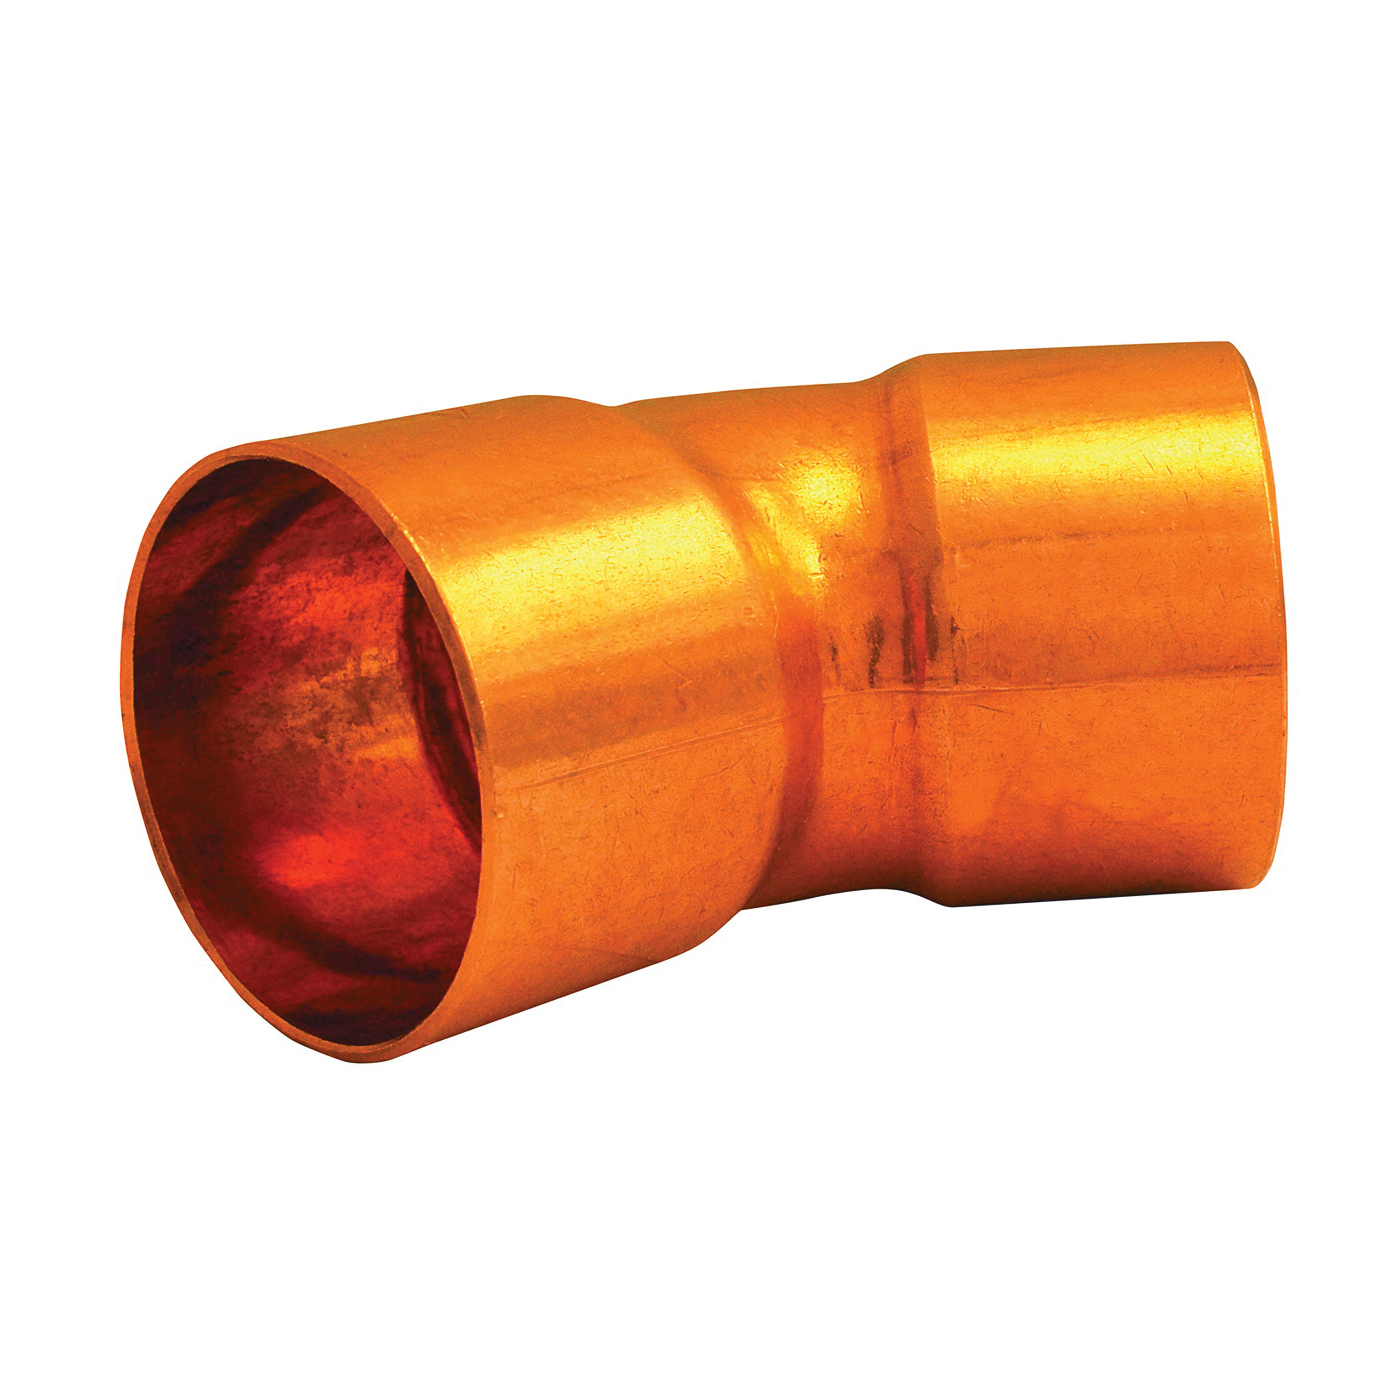 Picture of EPC 31096 Pipe Elbow, 1/2 in, Compression, 45 deg Angle, Wrot Copper